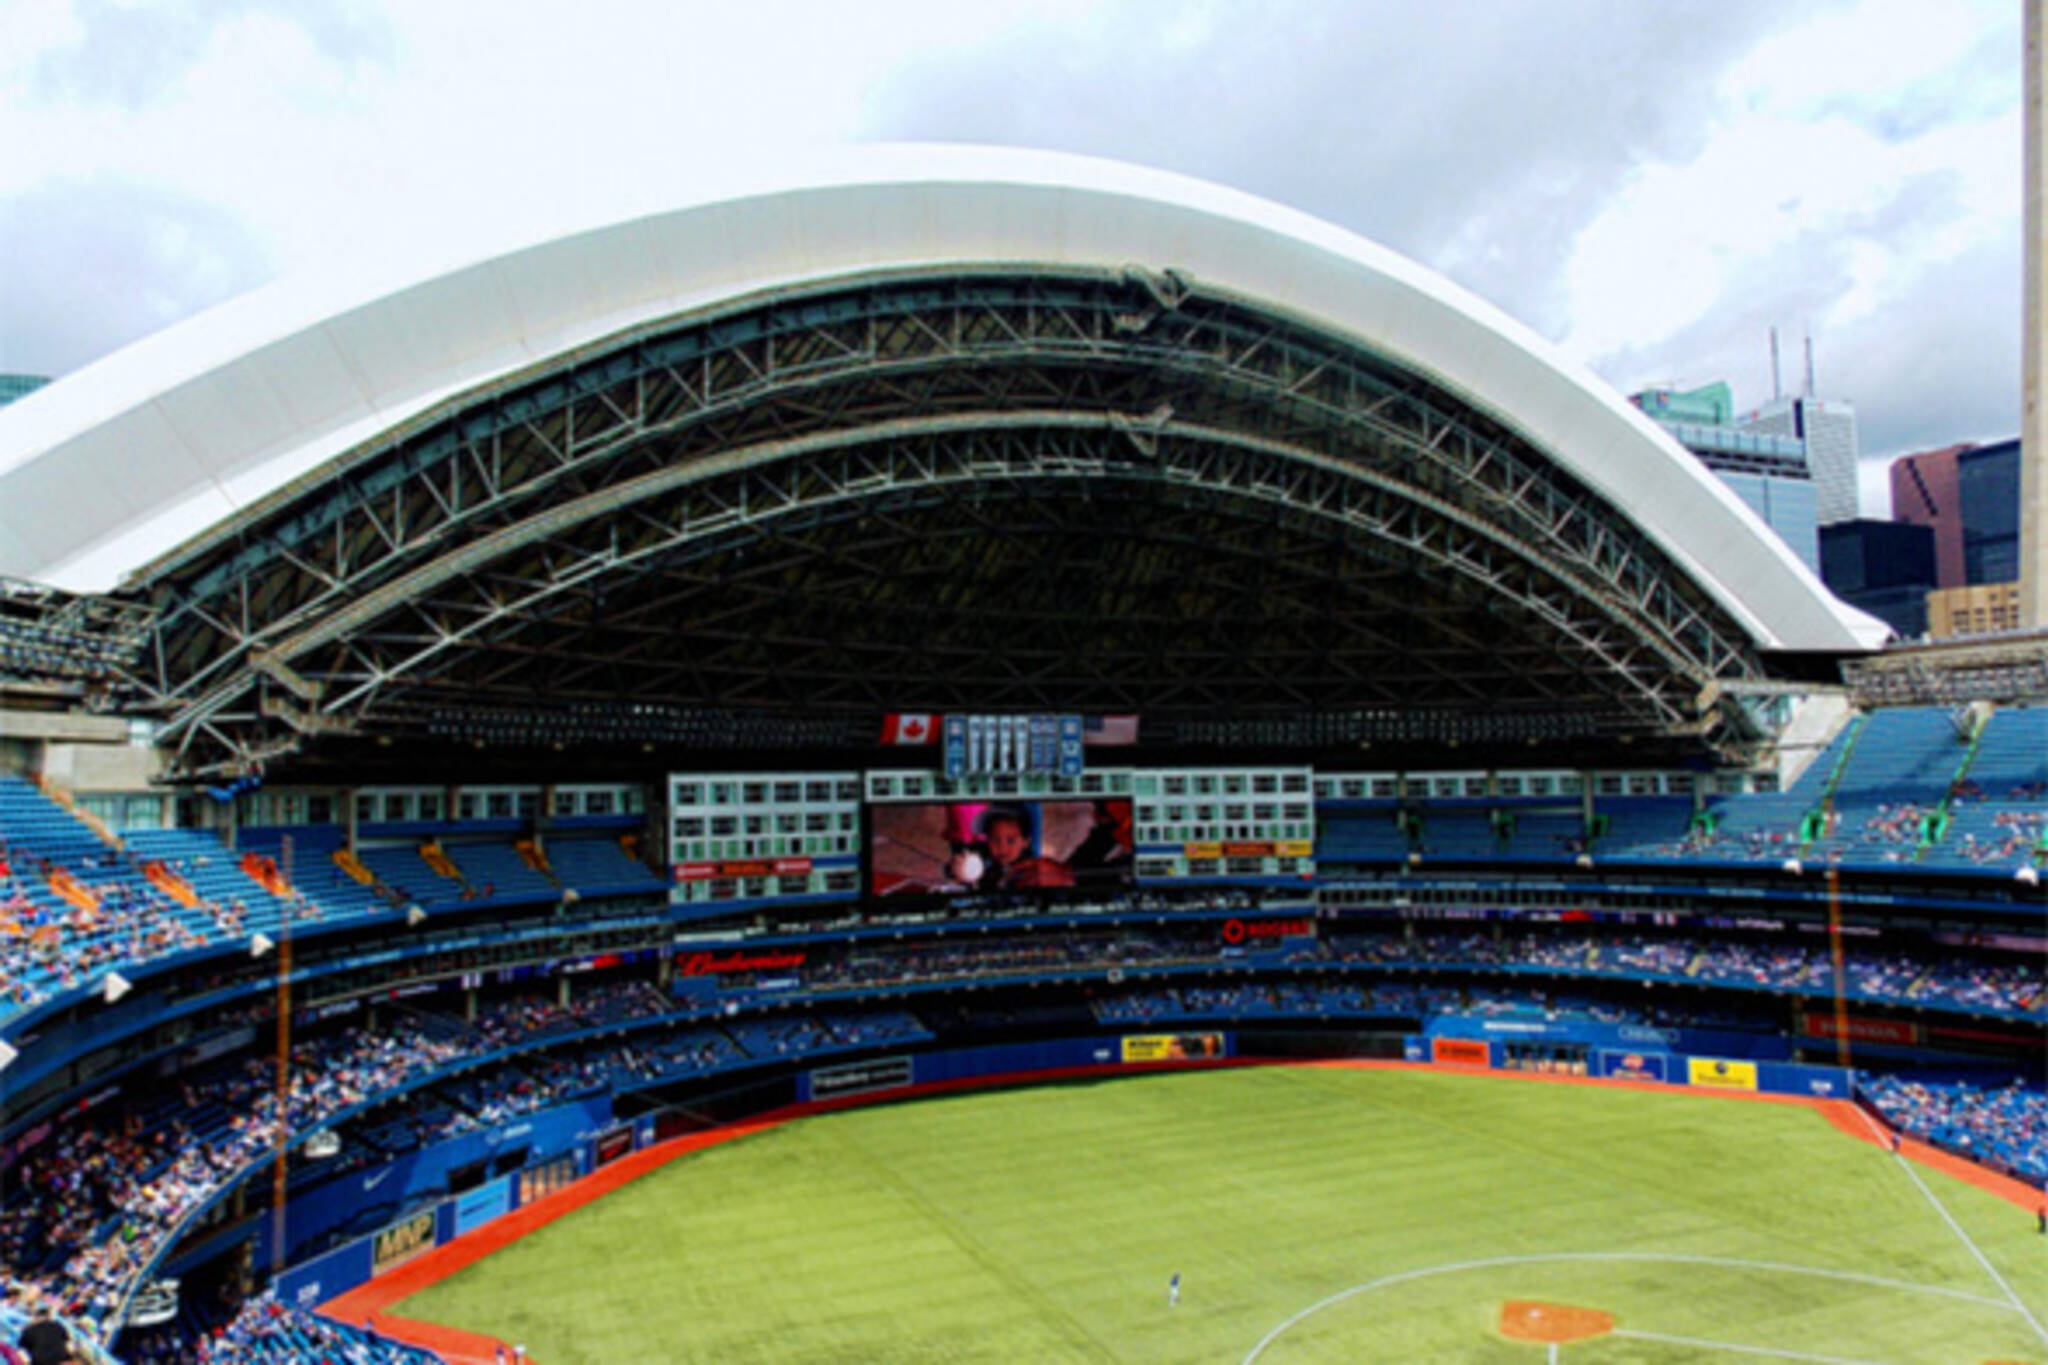 Rogers Centre Roof Open For The First Time This Season